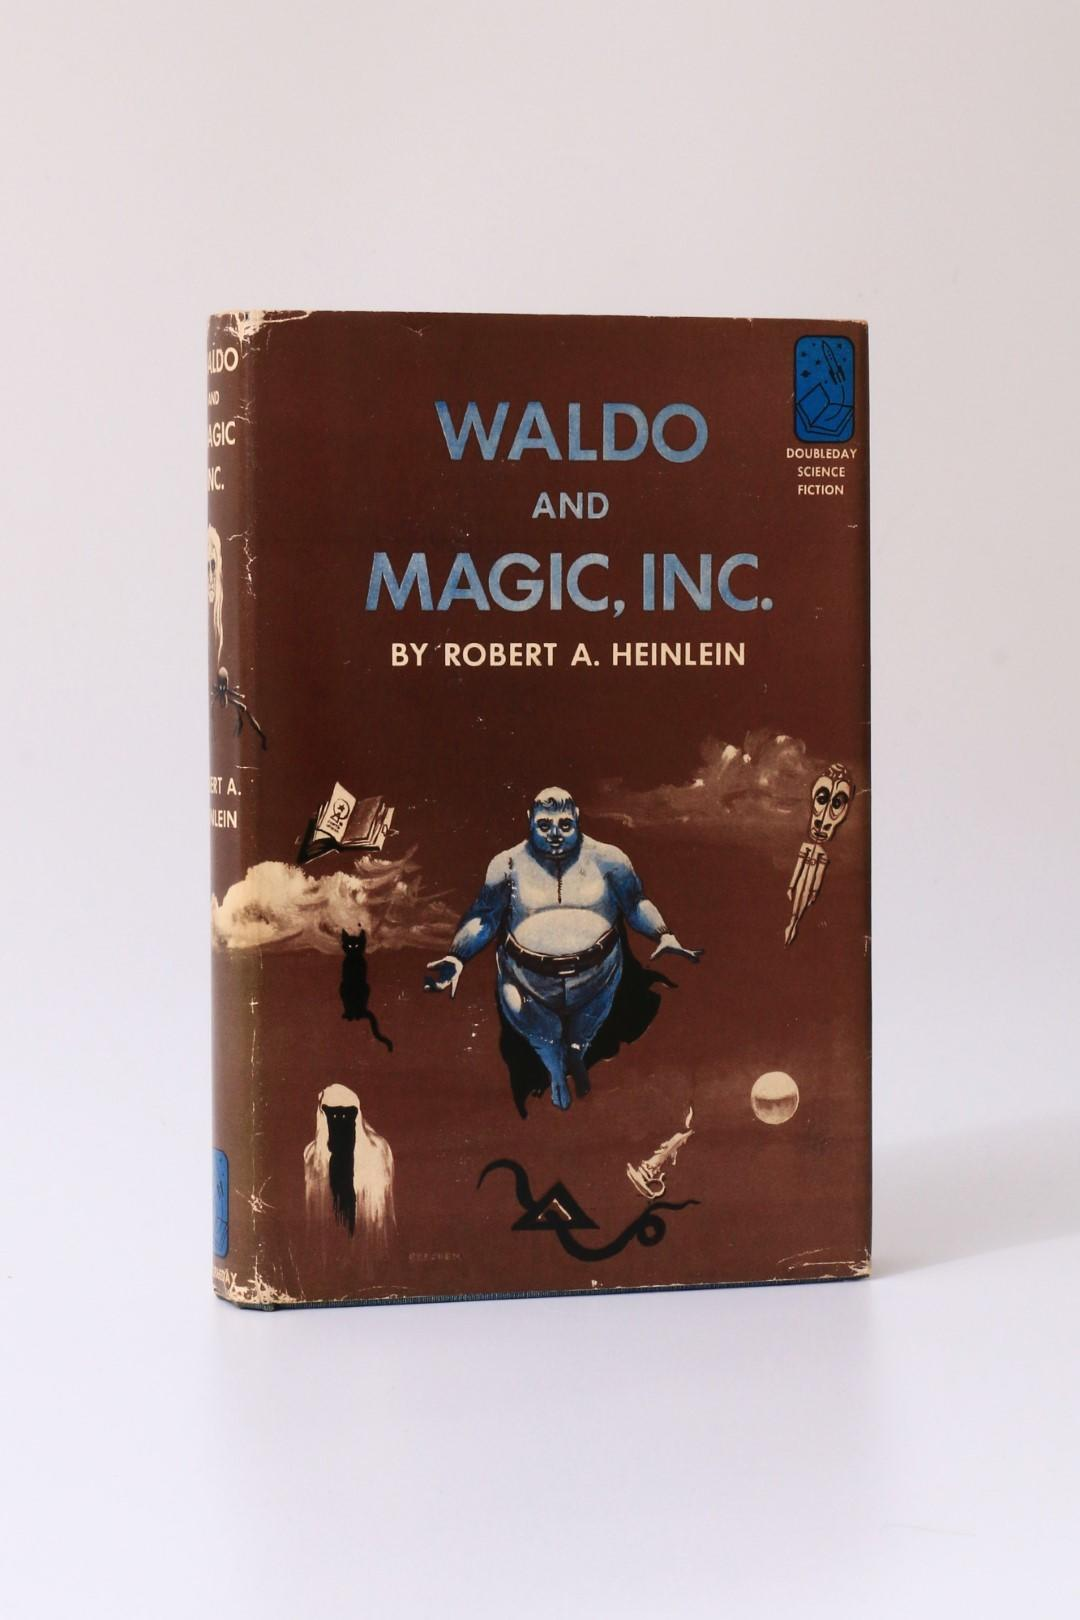 Robert A. Heinlein - Waldo and Magic, Inc. - Doubleday, 1950, First Edition.